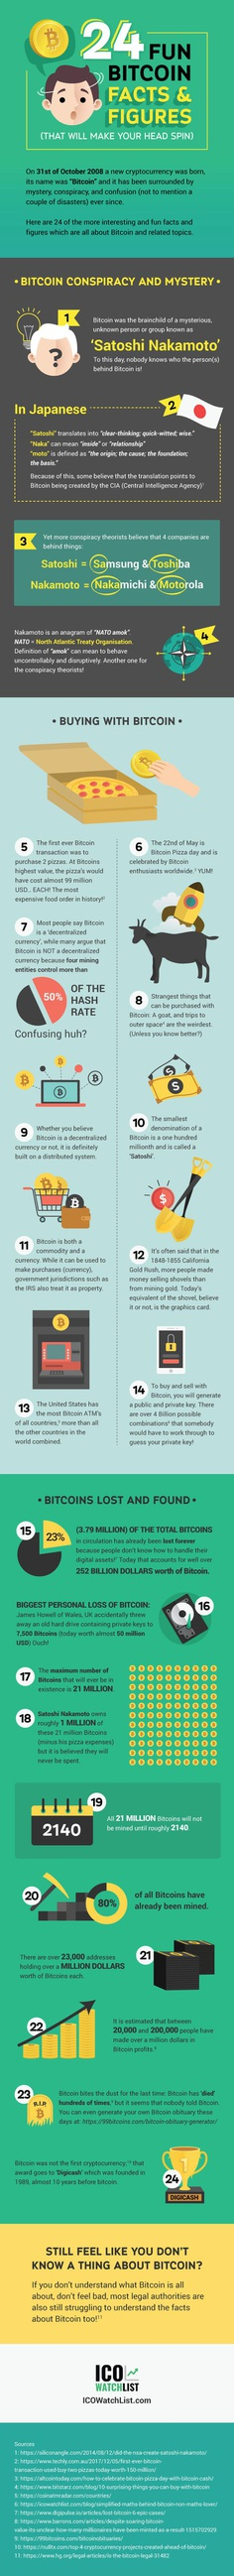 Fun Facts about Bitcoin infographic